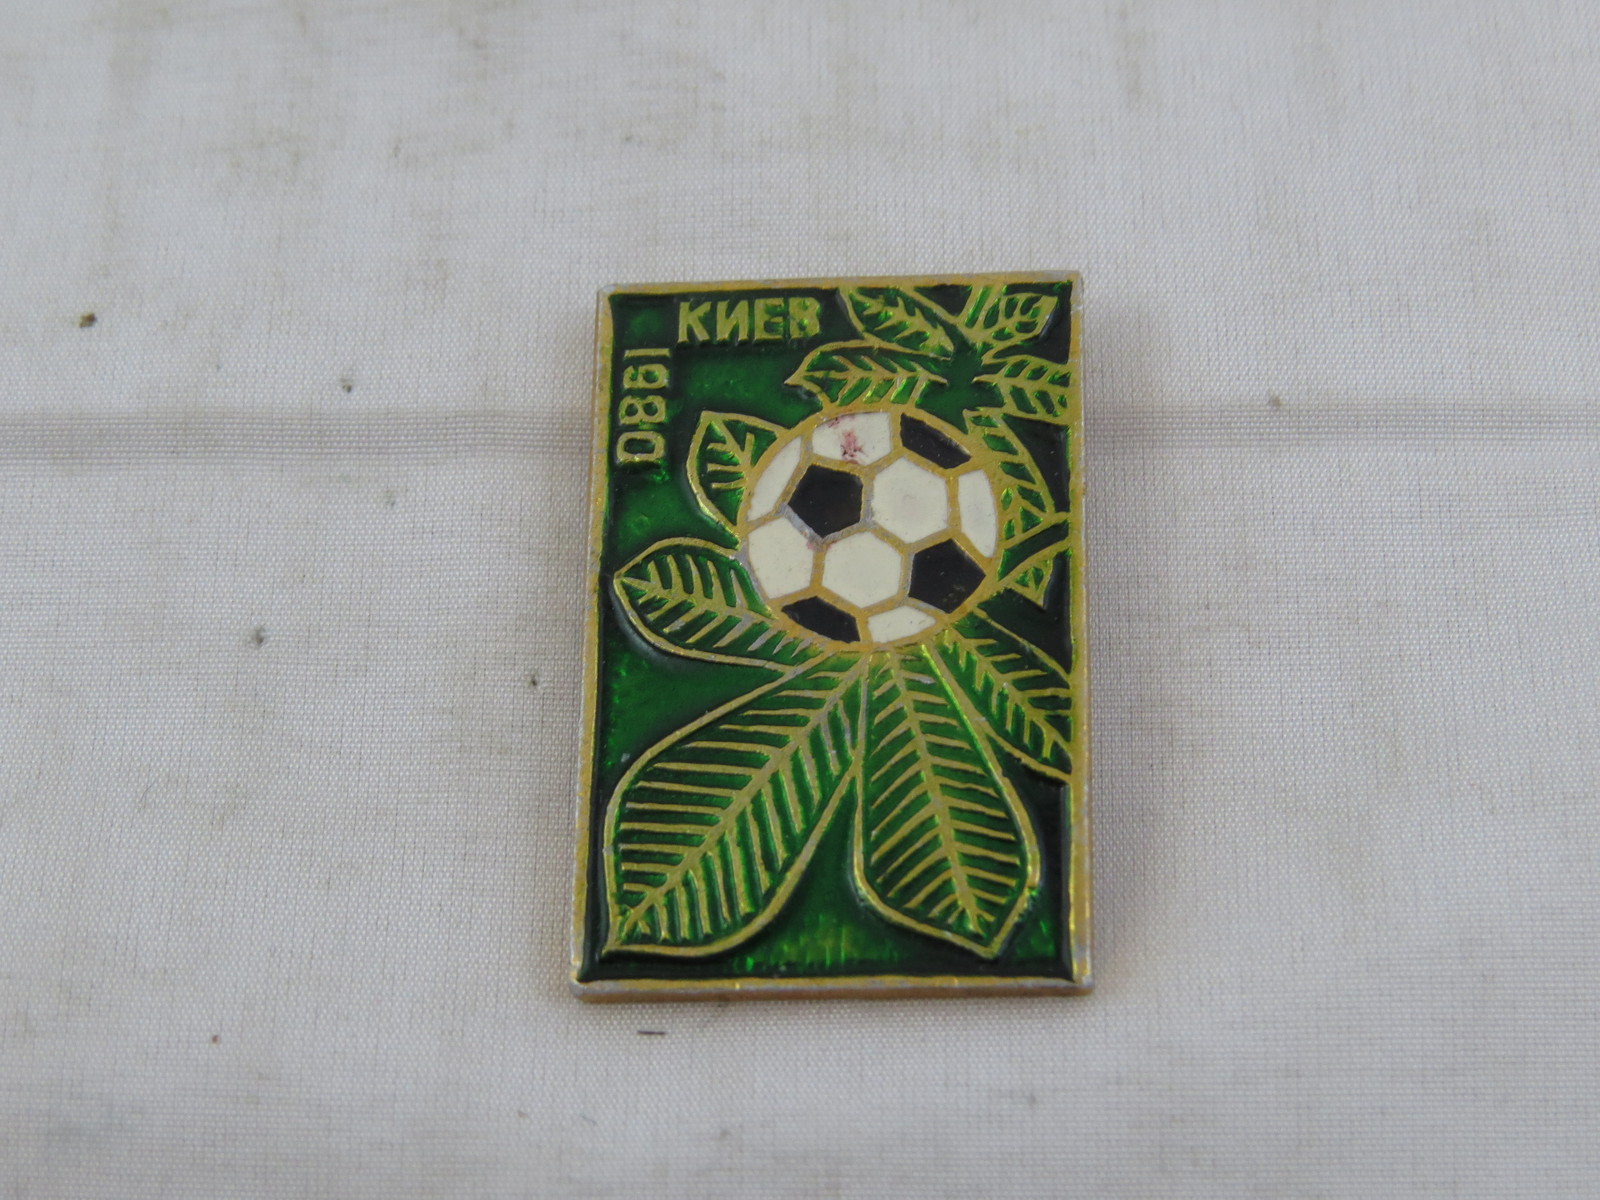 Primary image for 1980 Summer Games Olympic Pin - Kiev Soccer Venue Pin - Stamped Pin